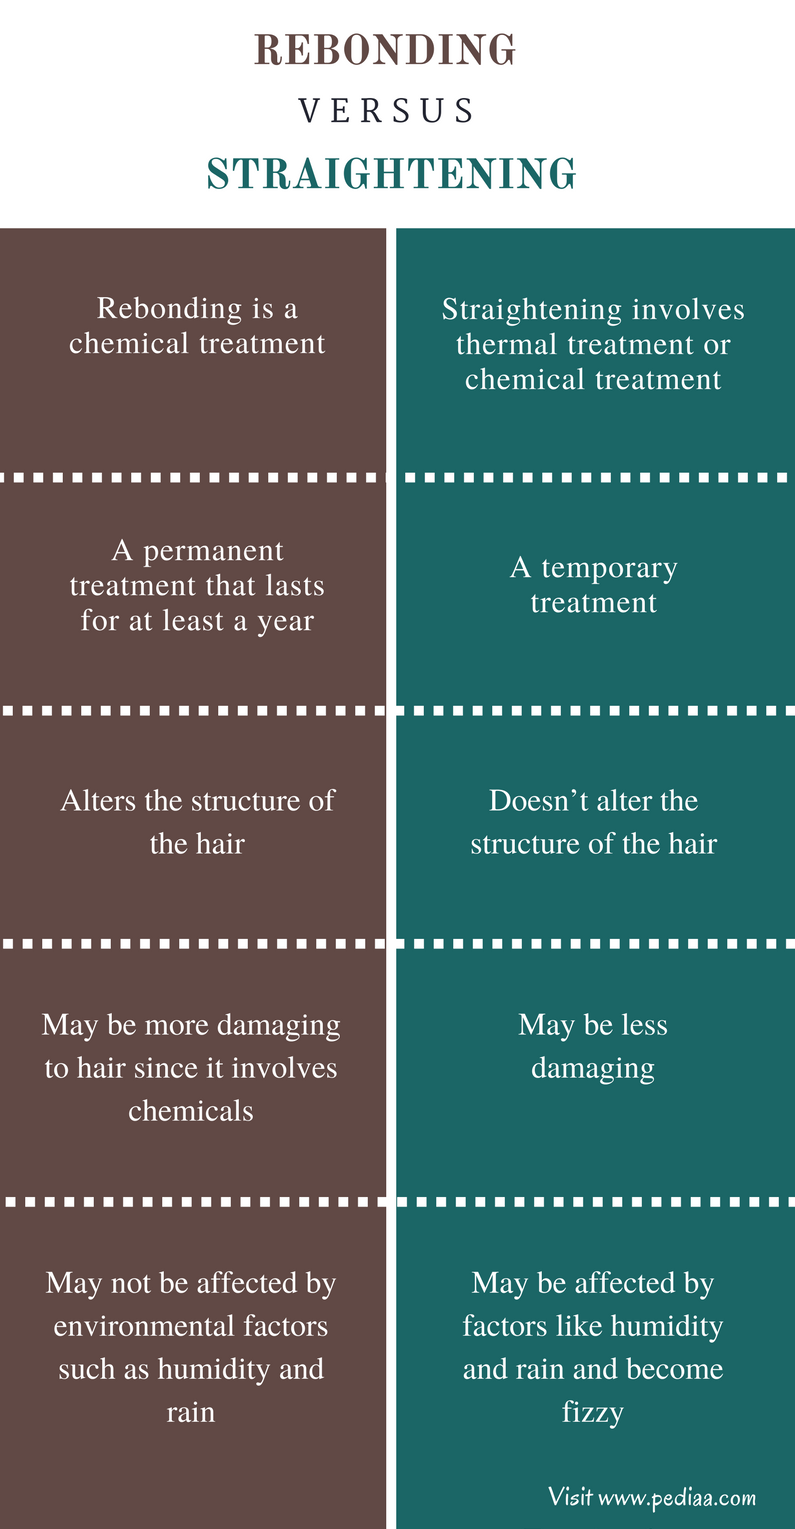 Difference Between Rebonding and Straightening - Comparison Summary